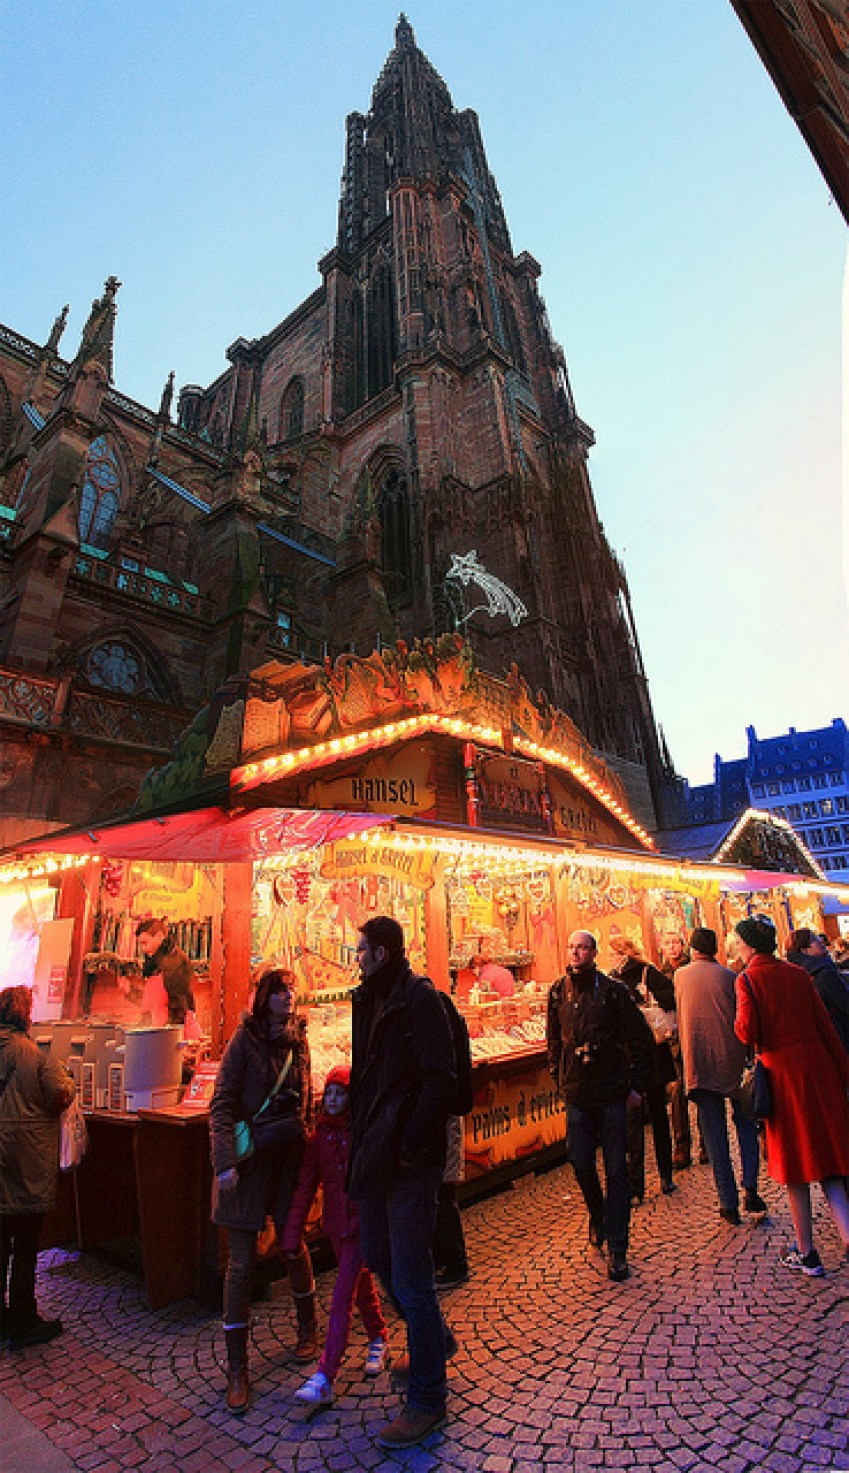 Christmas outside the Strasbourg Cathedral in France, taken by Diann Corbett, 12/2014.